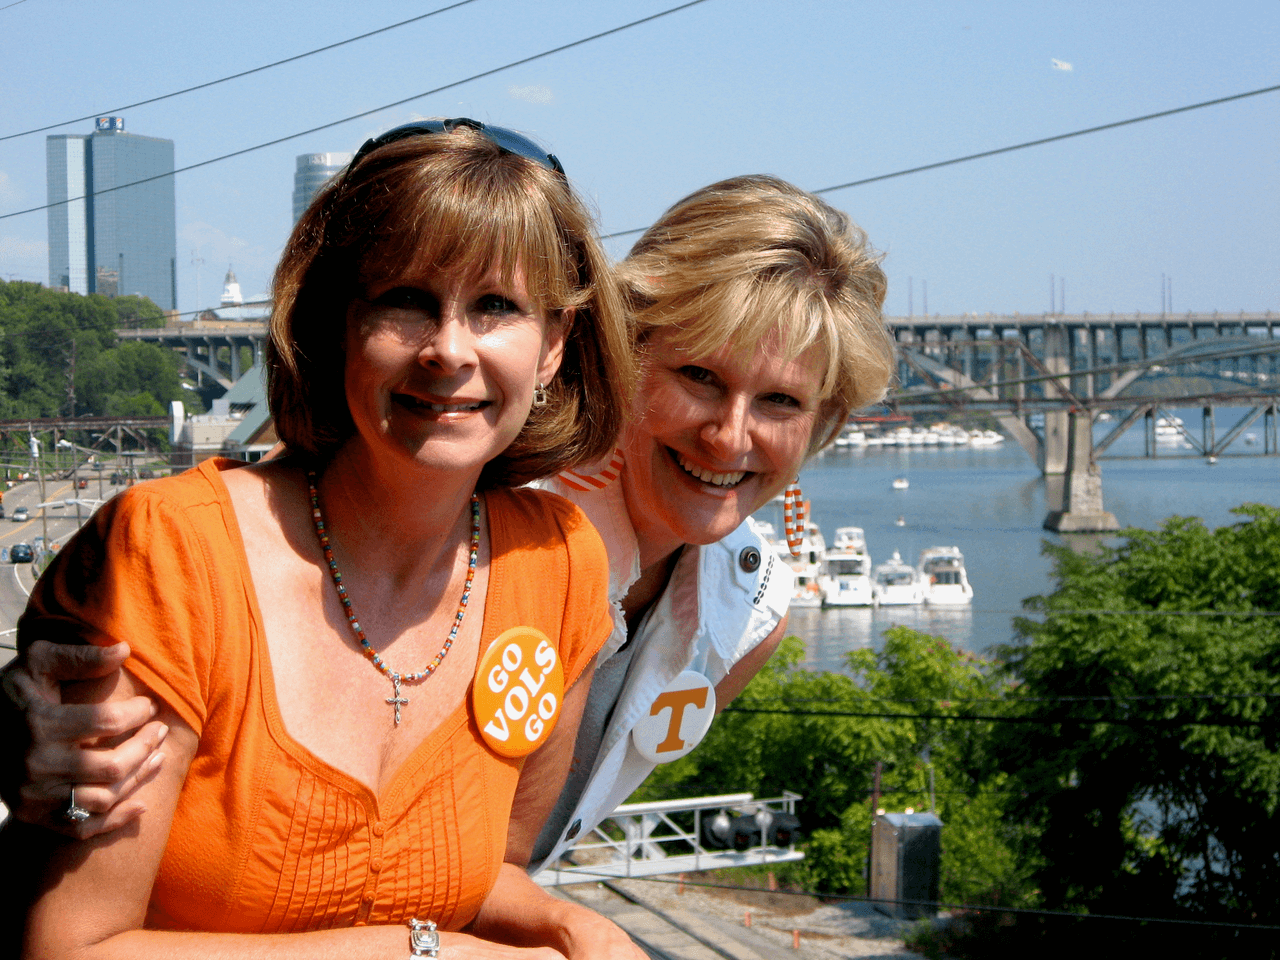 Robin and Kathy with their buttons Tennessee/Florida game photo by Kathy Miller